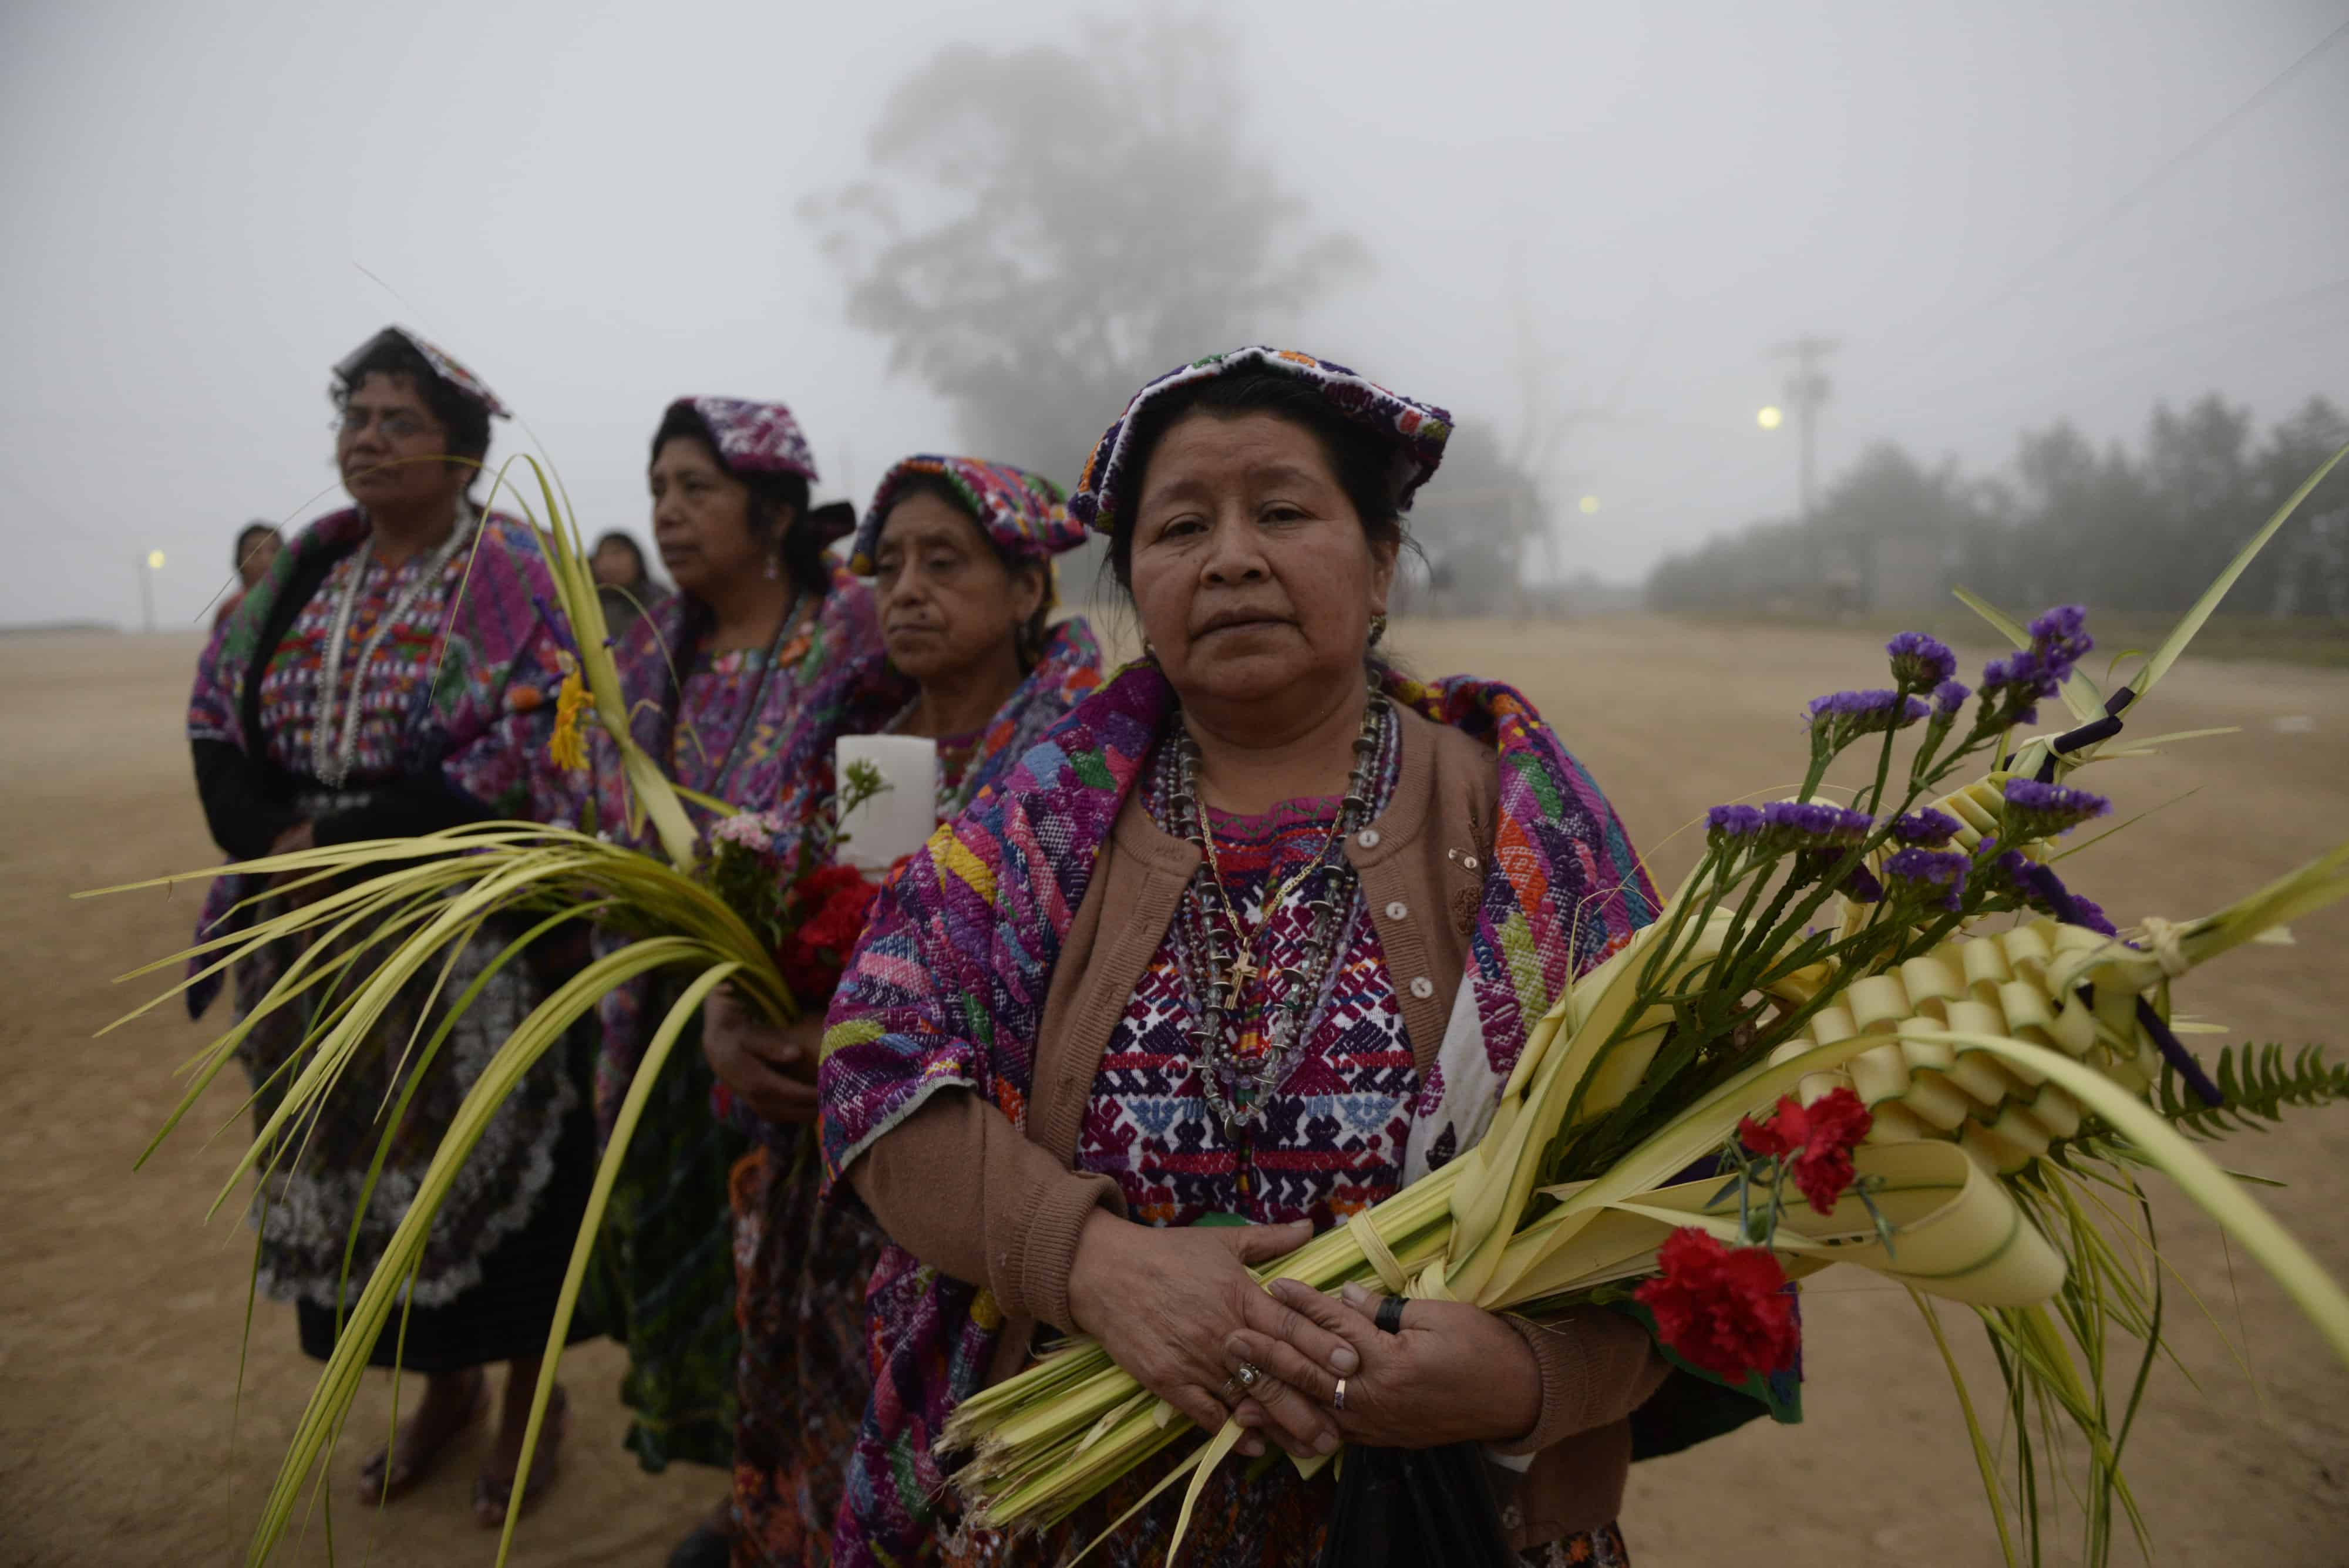 Catholic faithful prepare to start the Palm Sunday procession on March 29, 2015 in San Pedro Sacatepequez, 30 km west of Guatemala City.